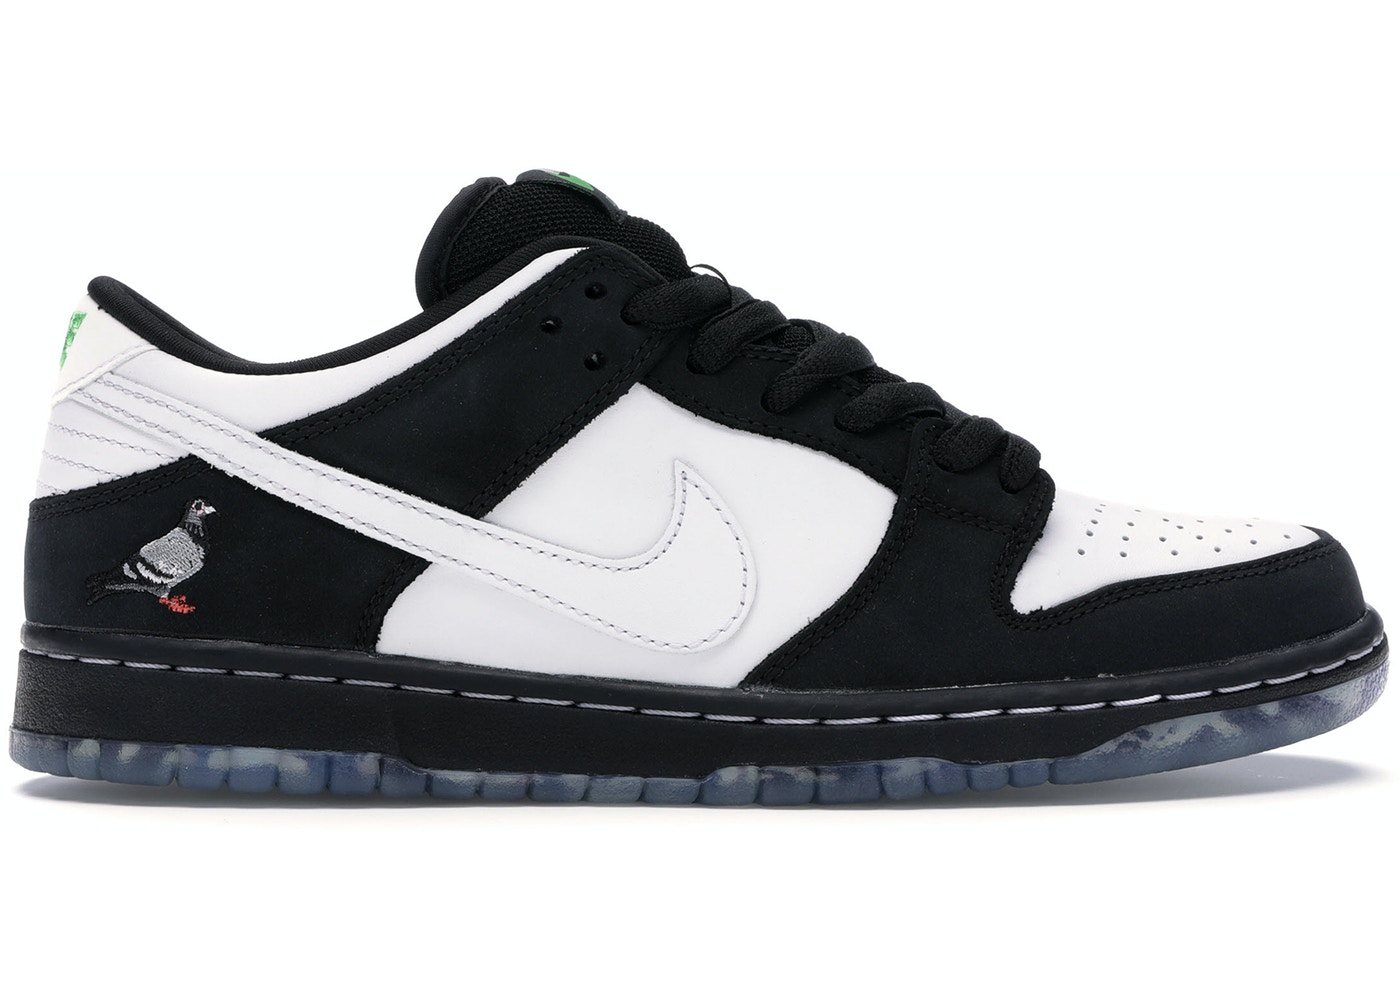 2a791203 Nike SB Dunk Low Staple Panda Pigeon - BV1310-013